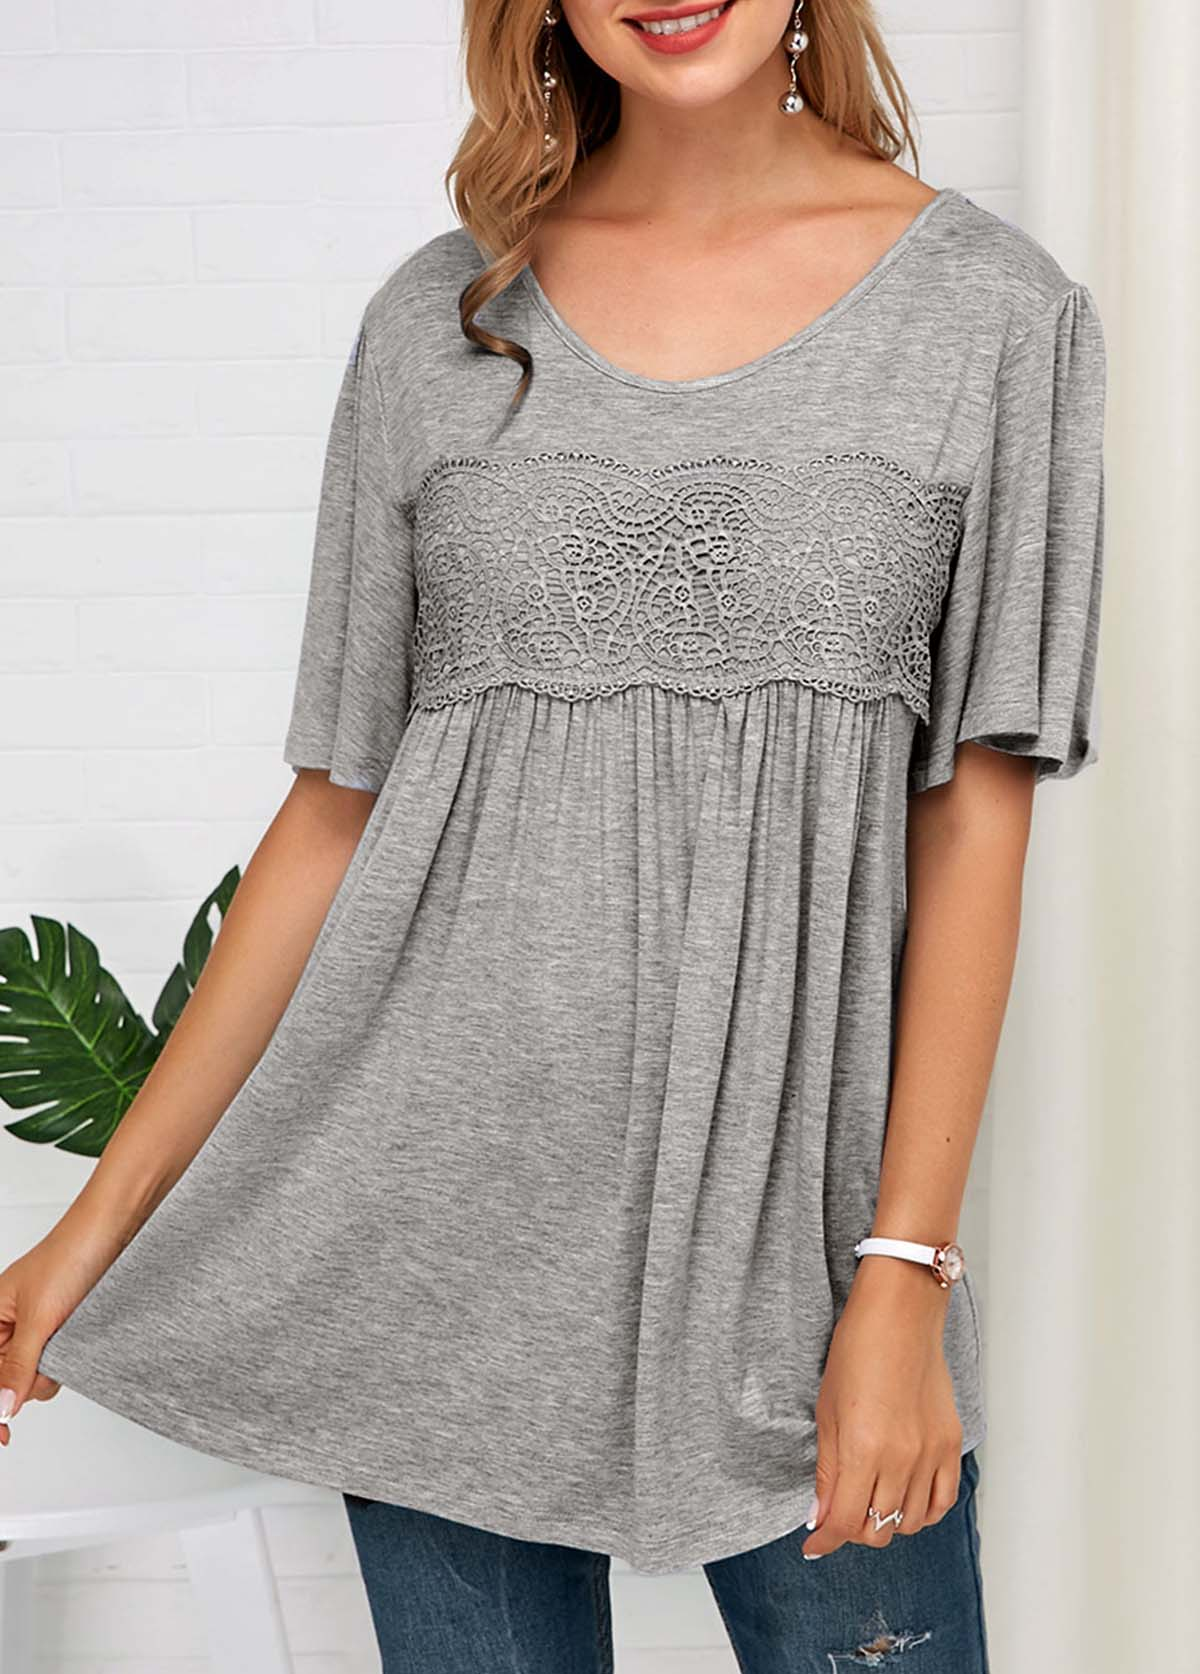 Lace Panel Grey Half Sleeve Soft T Shirt